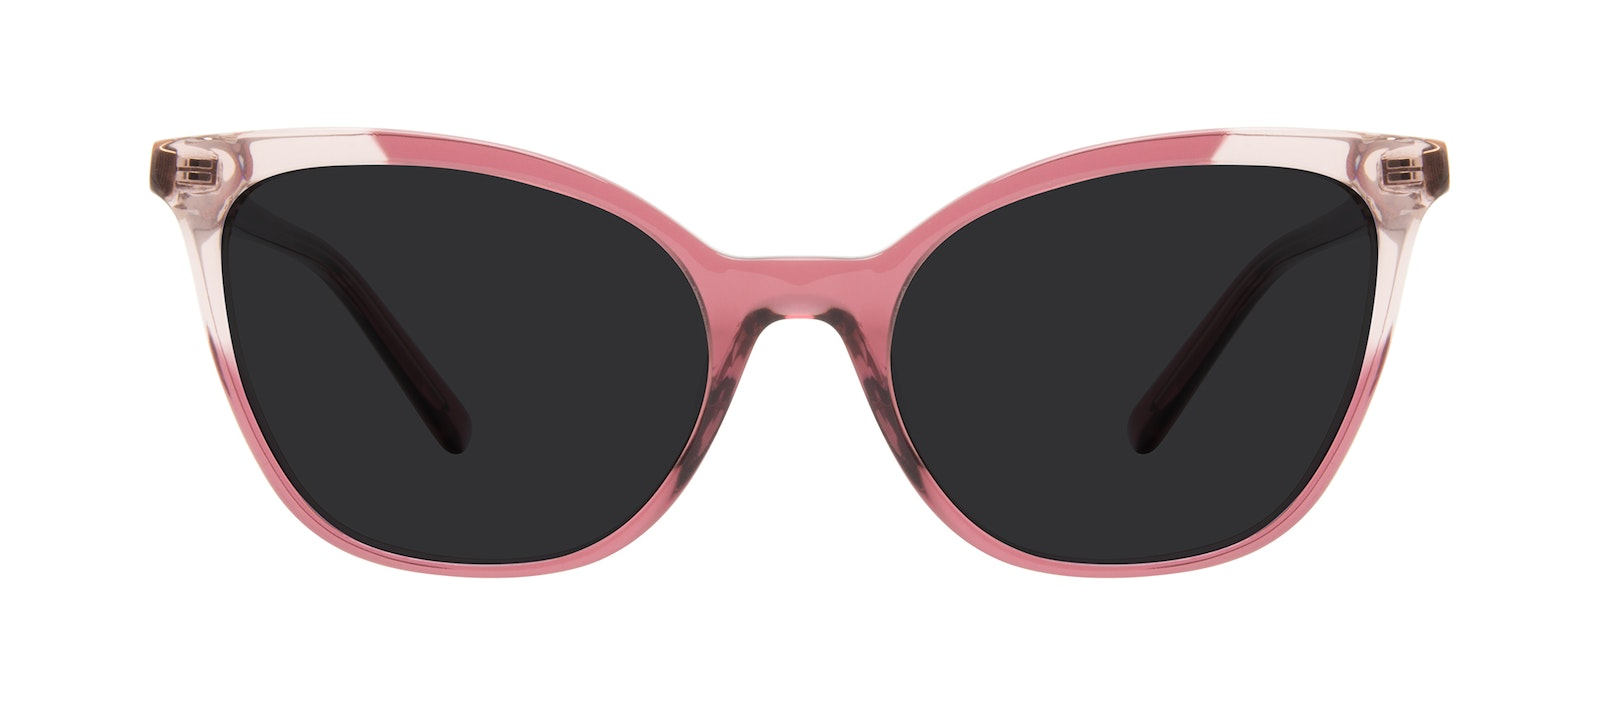 Affordable Fashion Glasses Cat Eye Sunglasses Women Tippi Orchid Pink Front